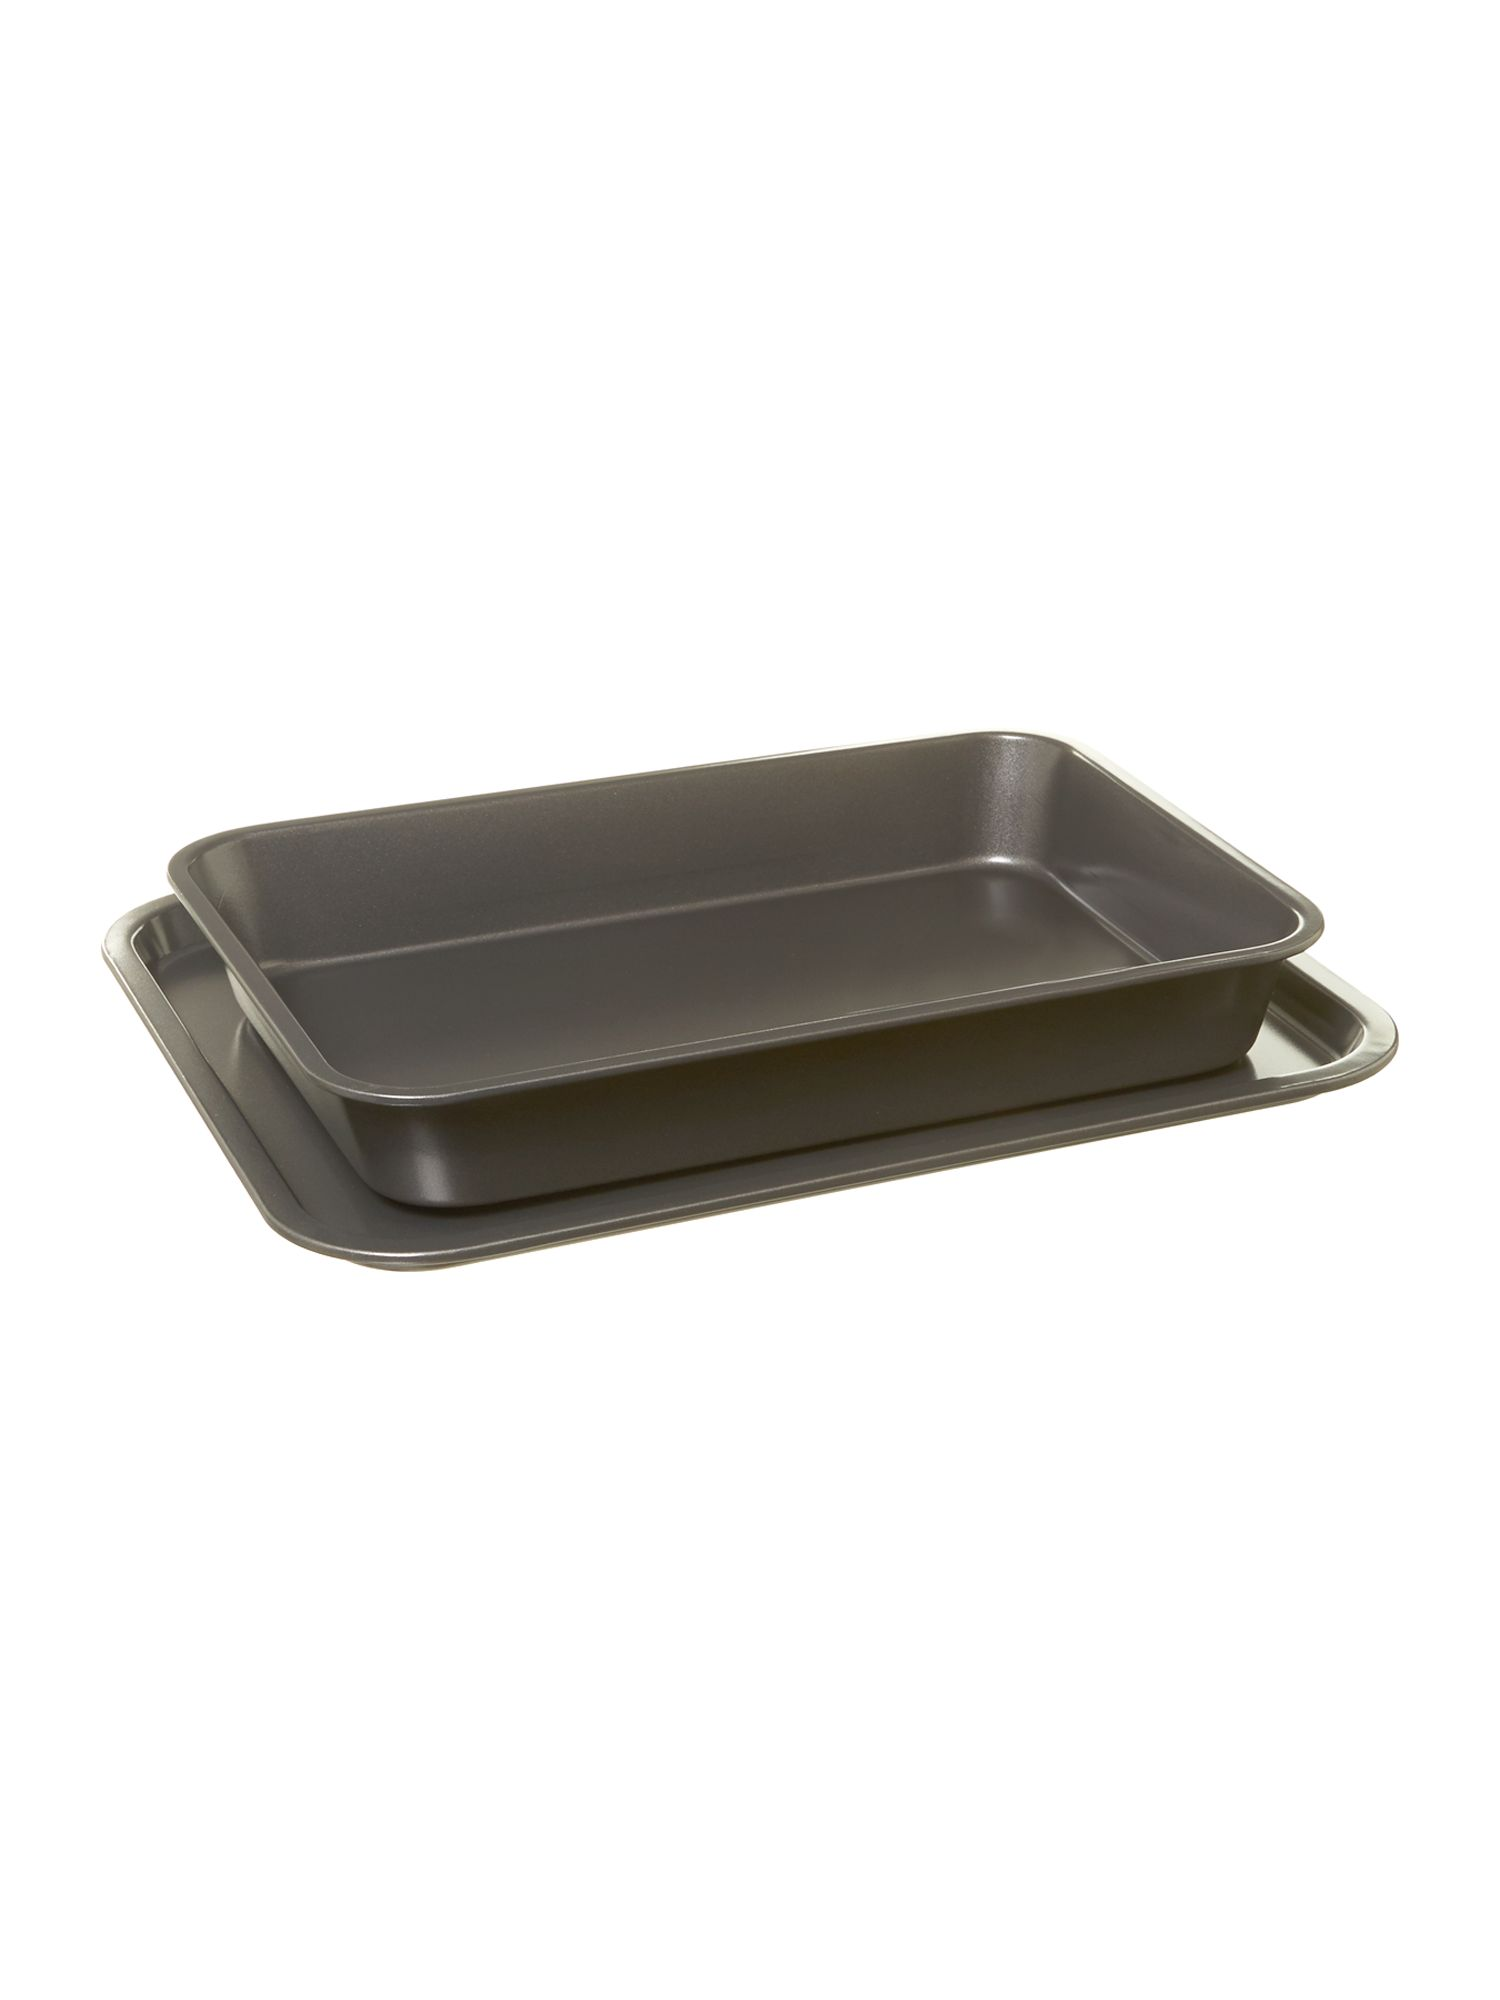 Two piece baking tray set